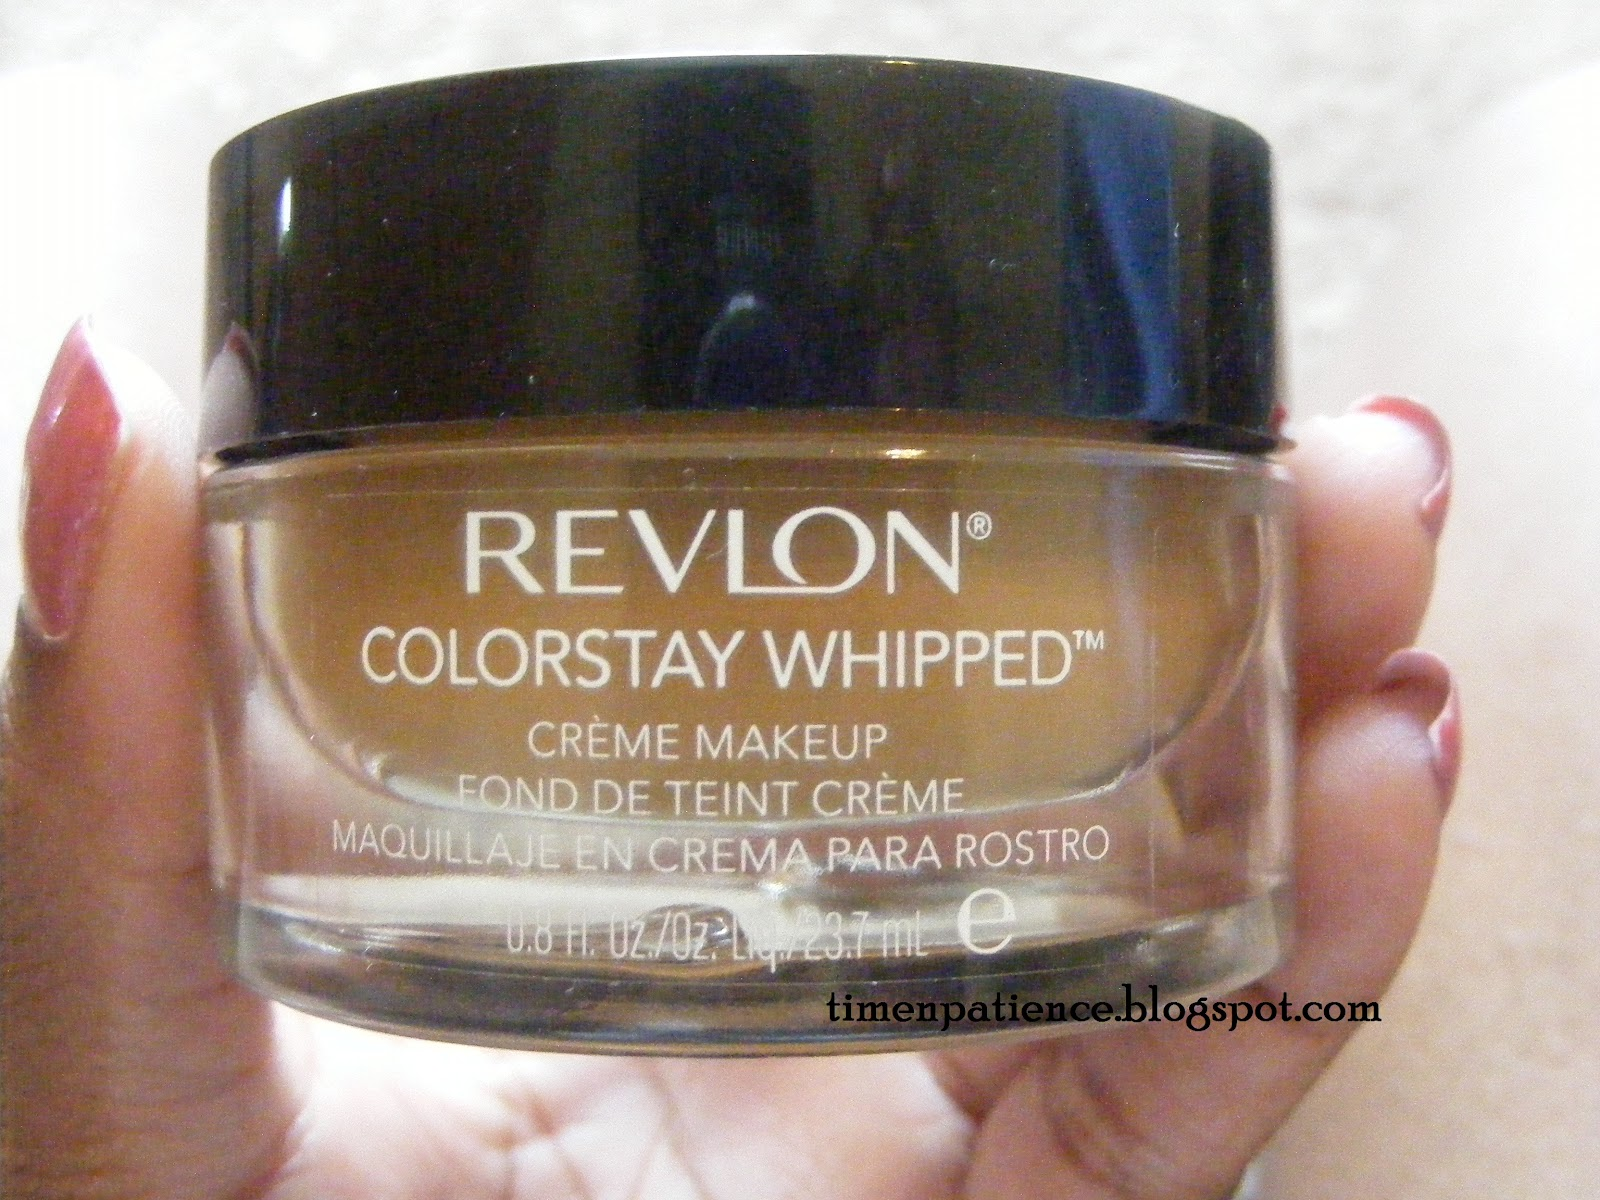 Time N' Patience: Revlon Colorstay Whipped Foundation - Caramel